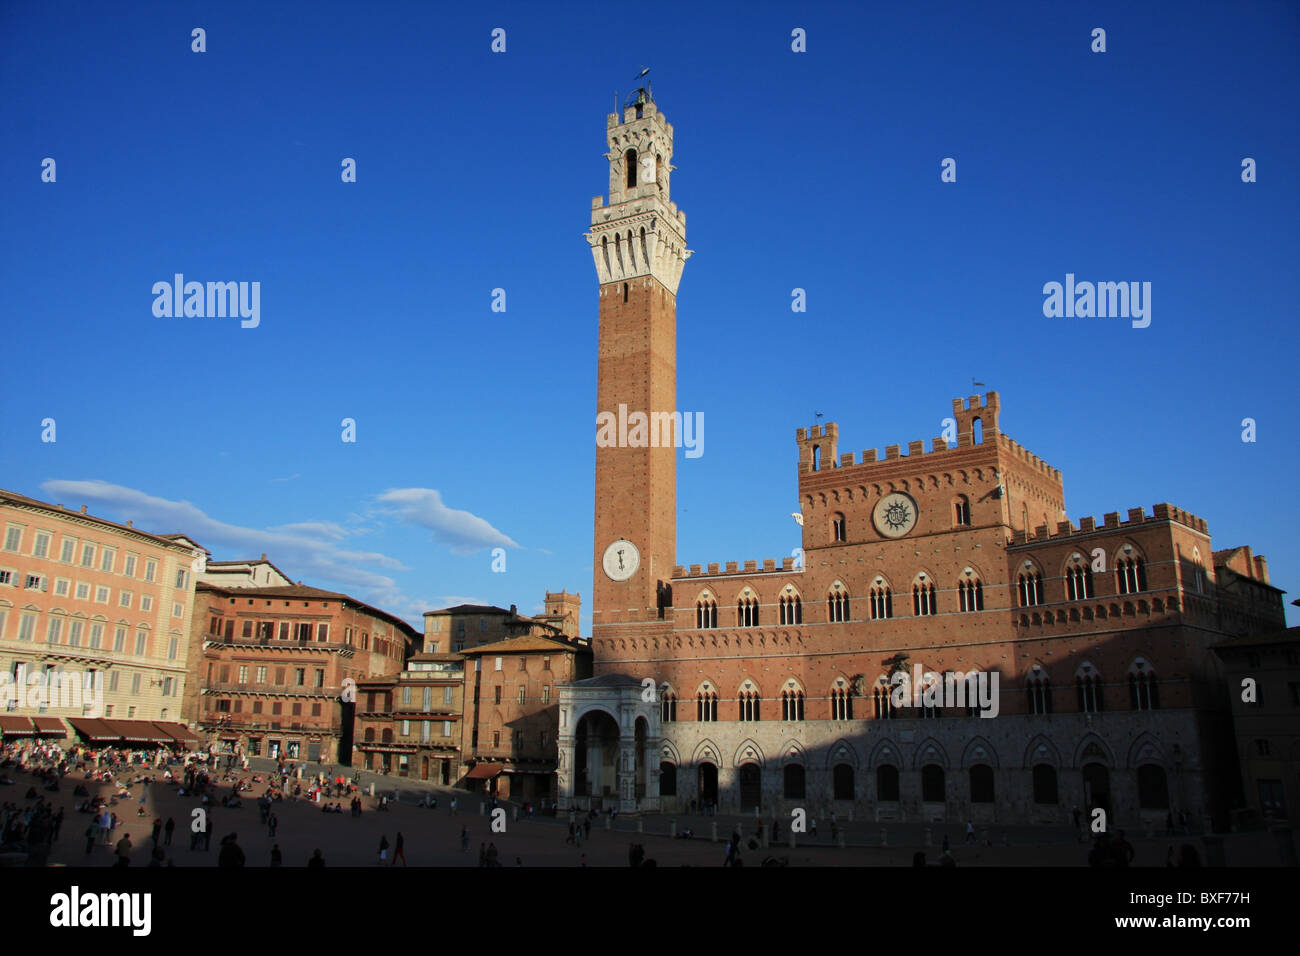 The Palio in Siena - Stock Image